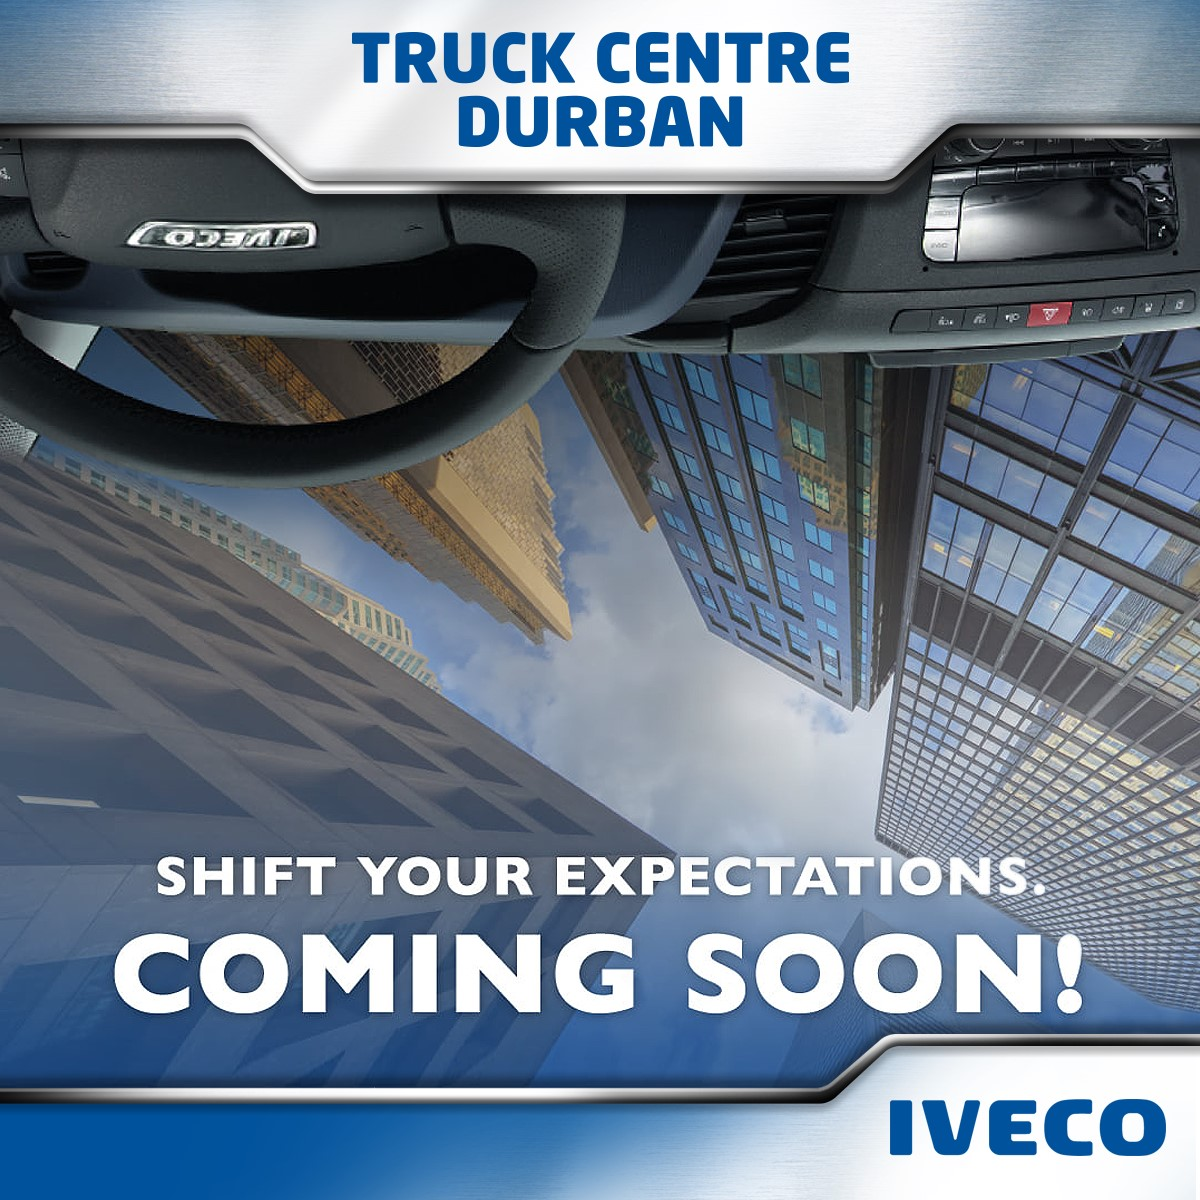 Shift-Your-Expectations - Truck Centre Durban